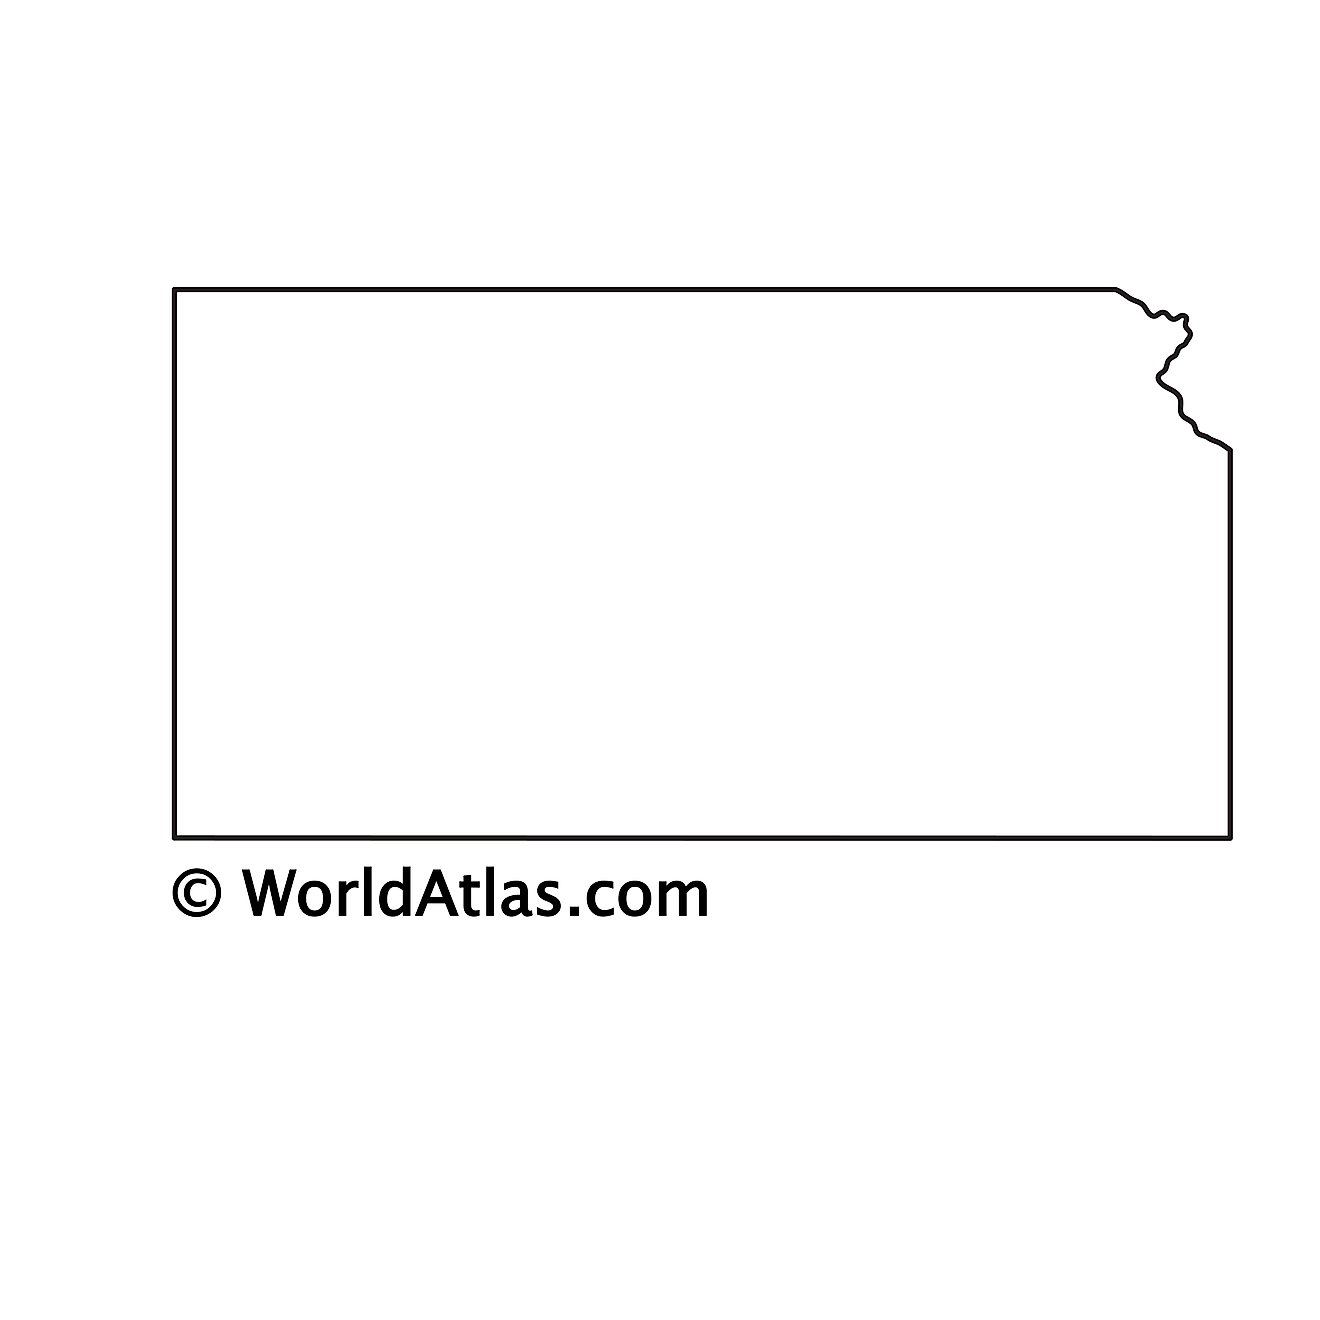 Blank outline map of Kansas